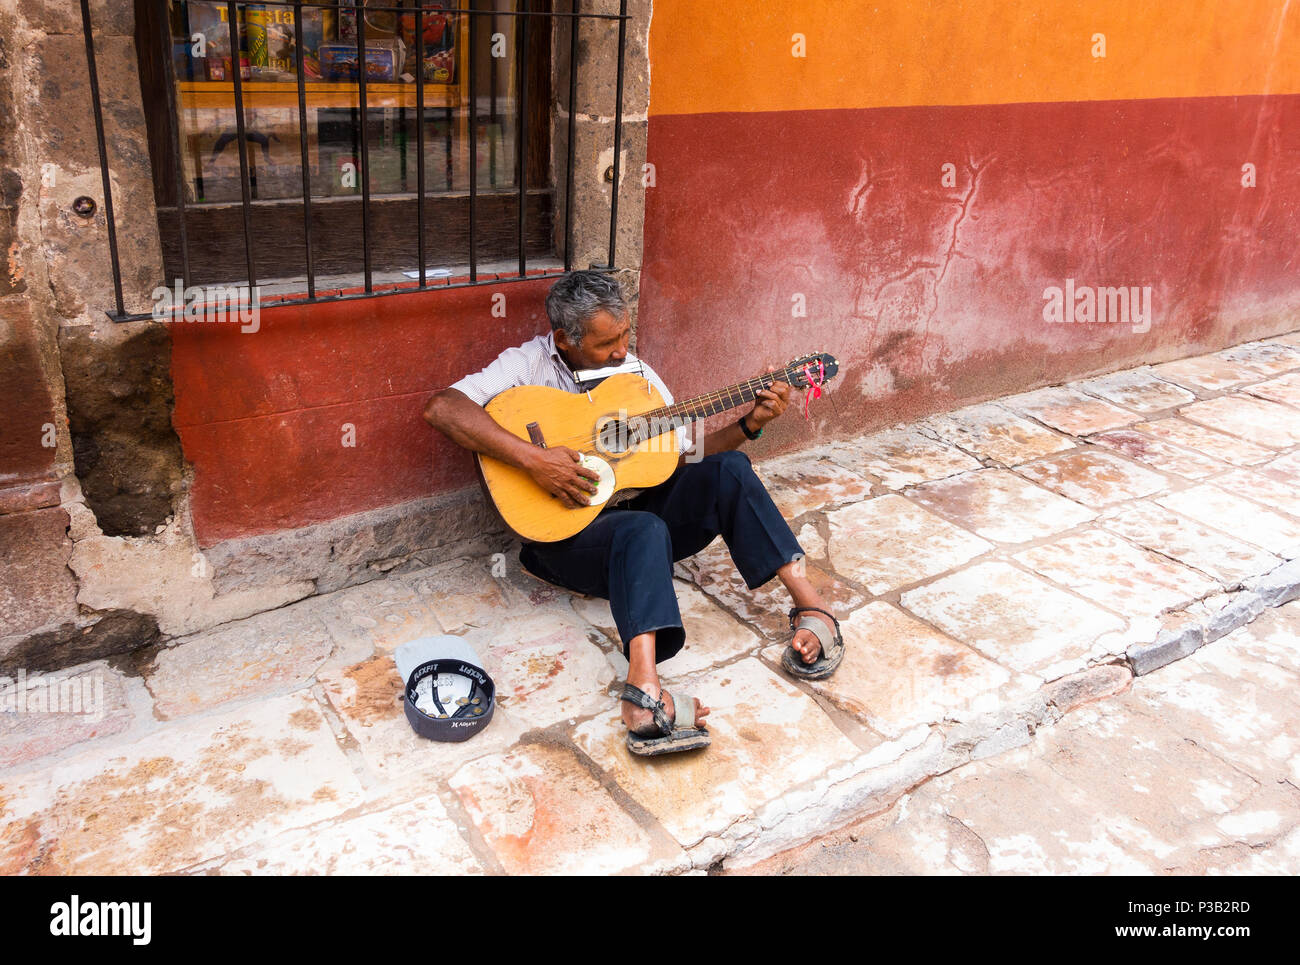 crippled-busker-playing-guitar-and-harmo